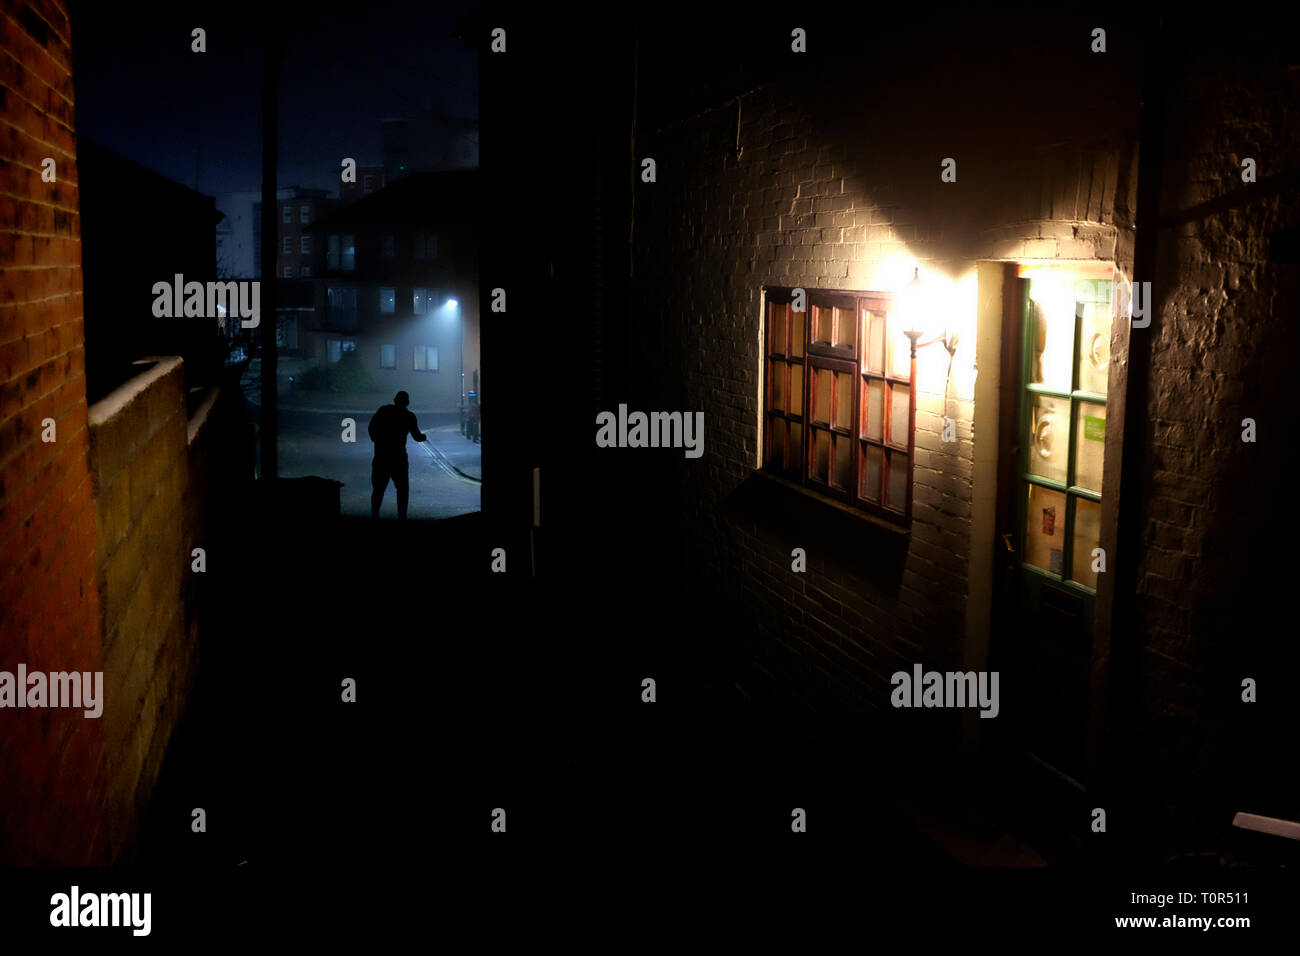 sinister,figure,in,silhouette,silhouetted,at,end,of,alleyway,alley,house,lights,front,door,criminal,crime,murder,murderer,fear,of,night,dark,shadows,l - Stock Image